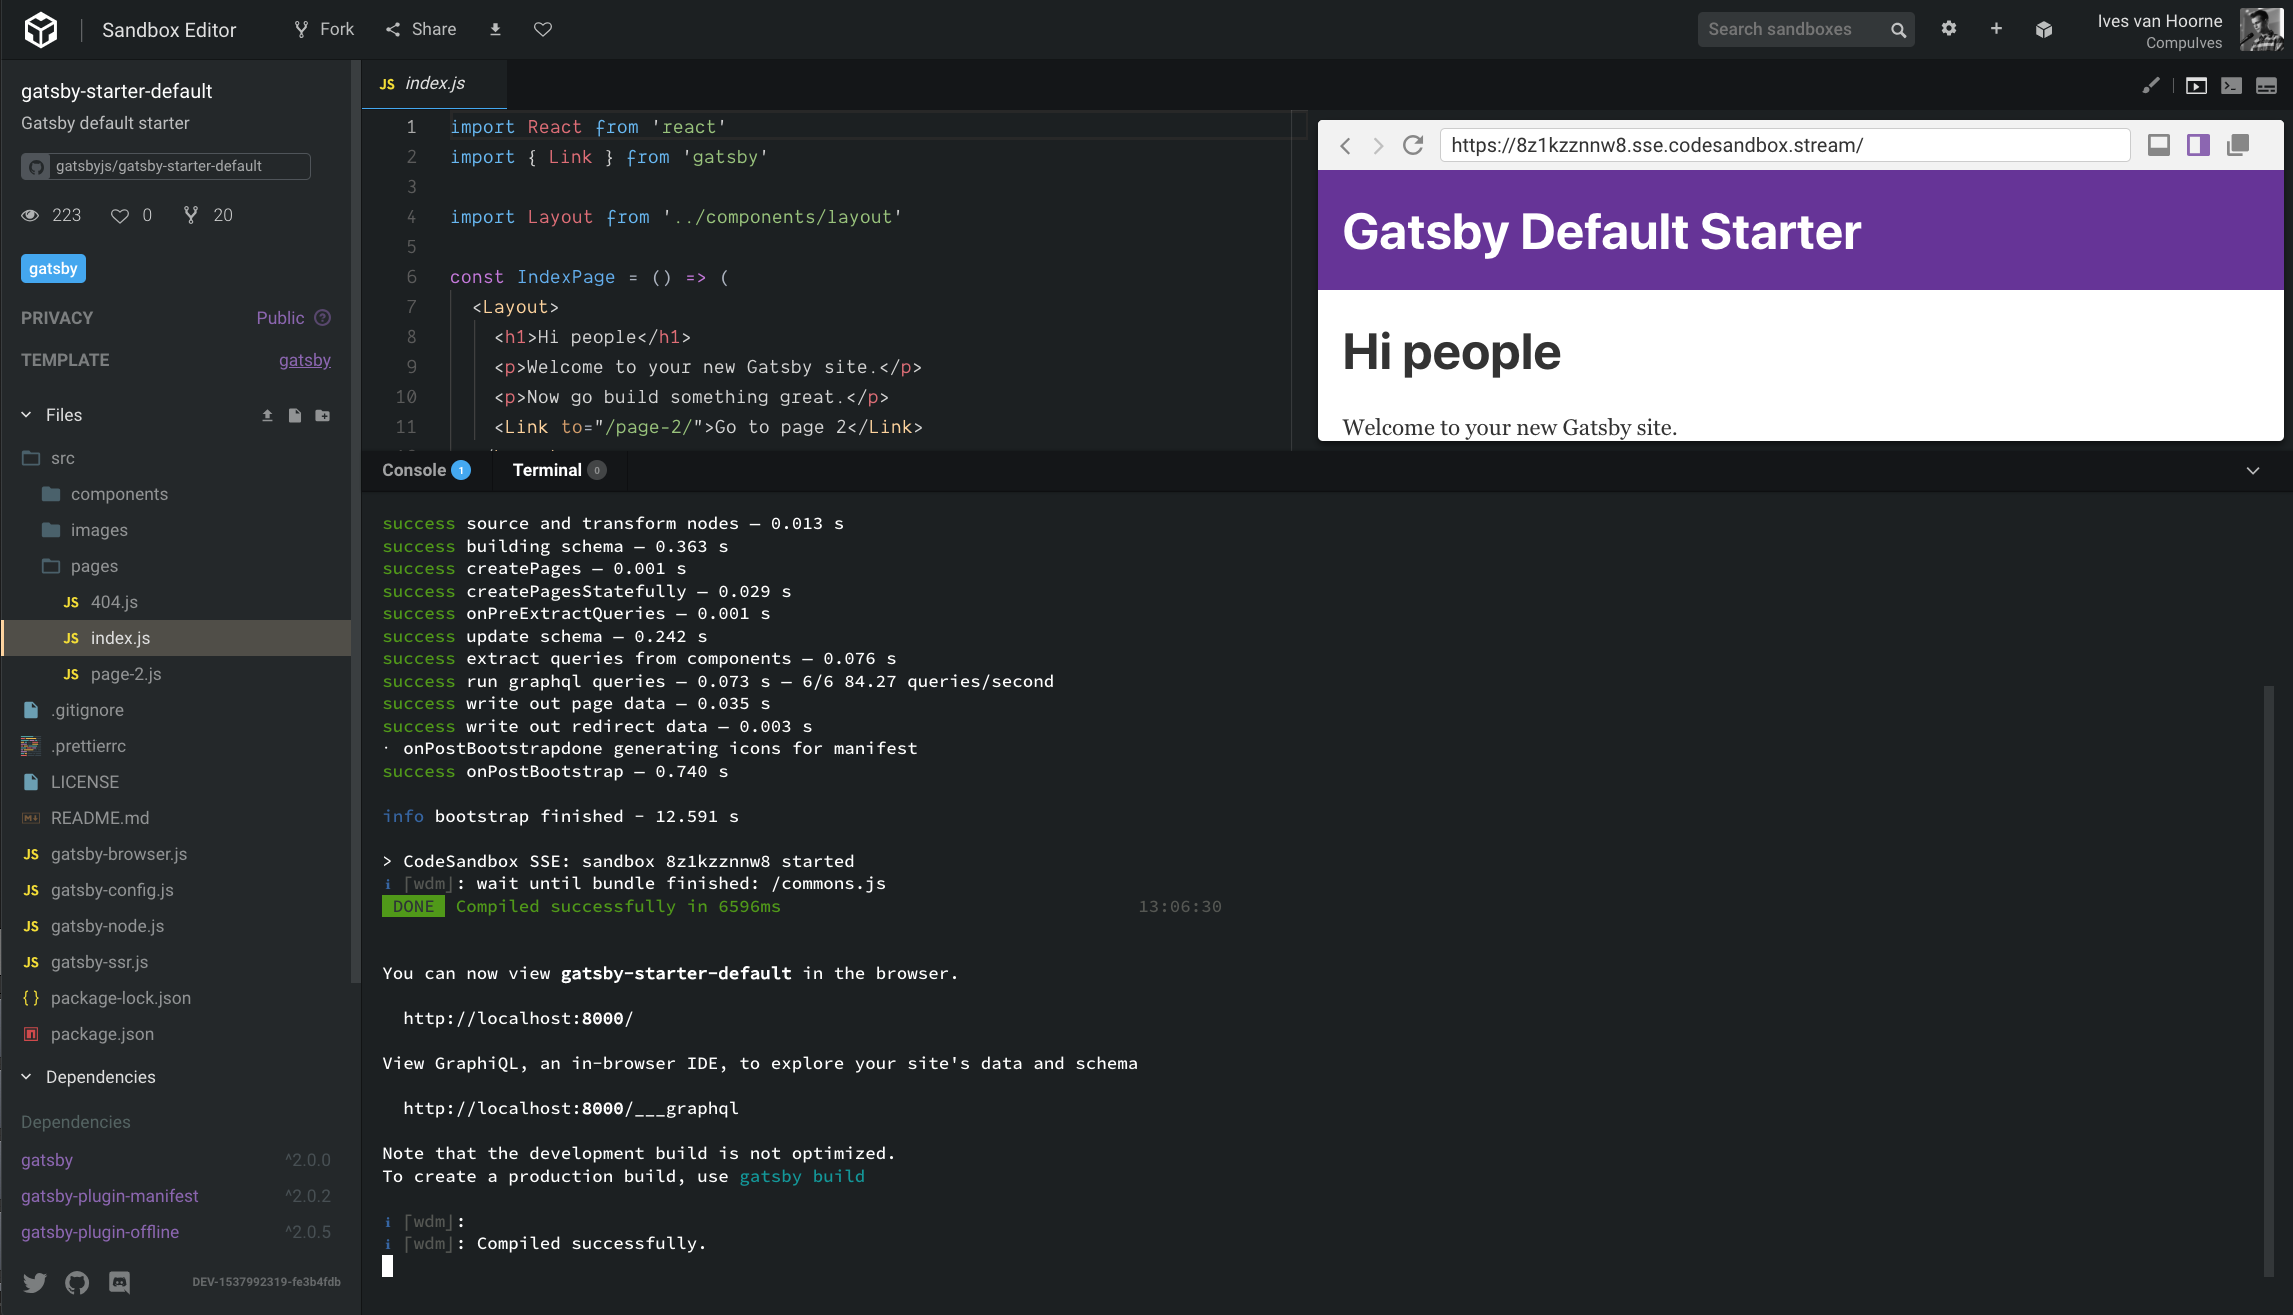 Announcing CodeSandbox Containers - By